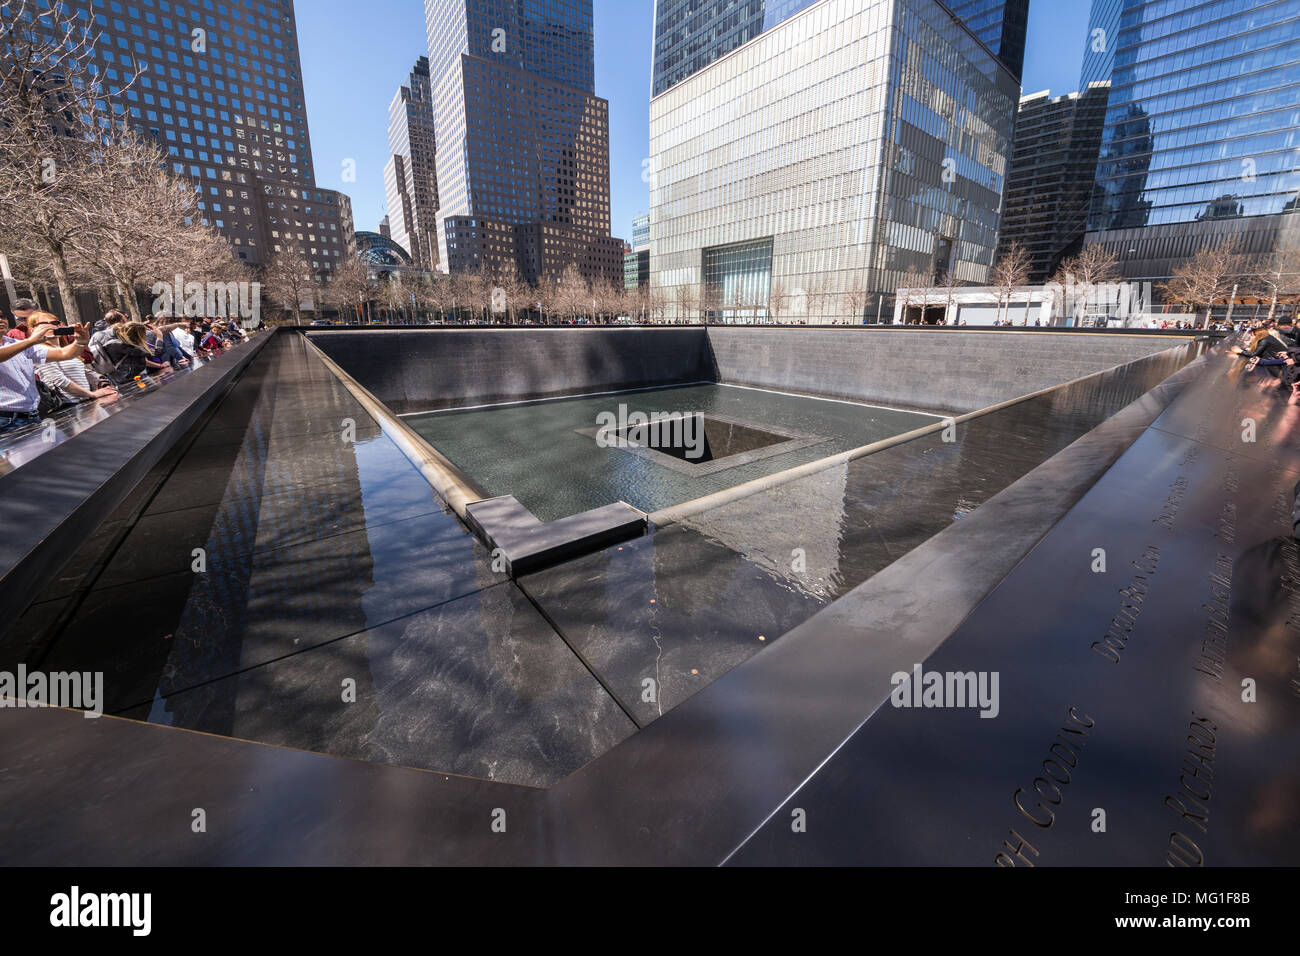 WTC Memorial and Freedom Tower - Stock Image